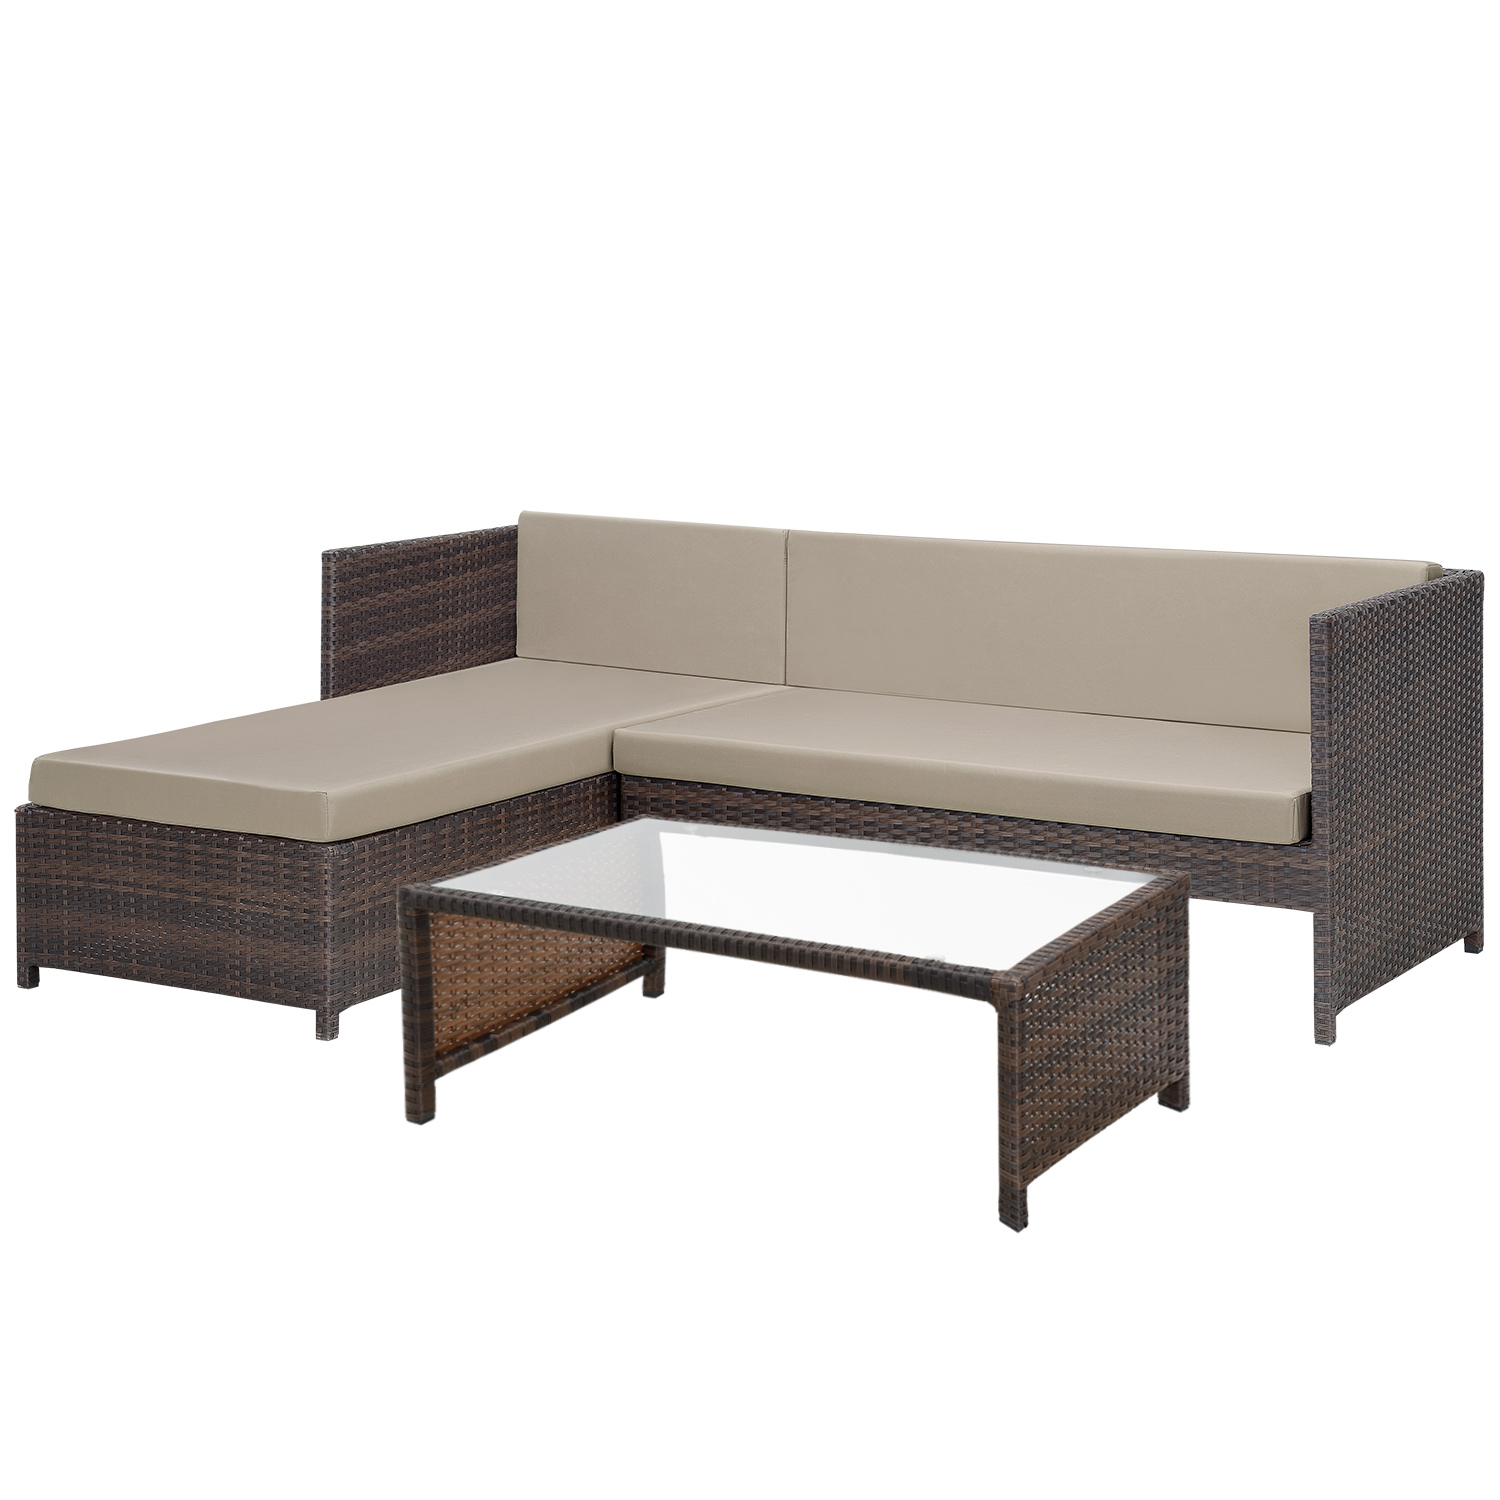 casa pro poly rattan lounge corner sofa table garden set polyrattan furniture ebay. Black Bedroom Furniture Sets. Home Design Ideas